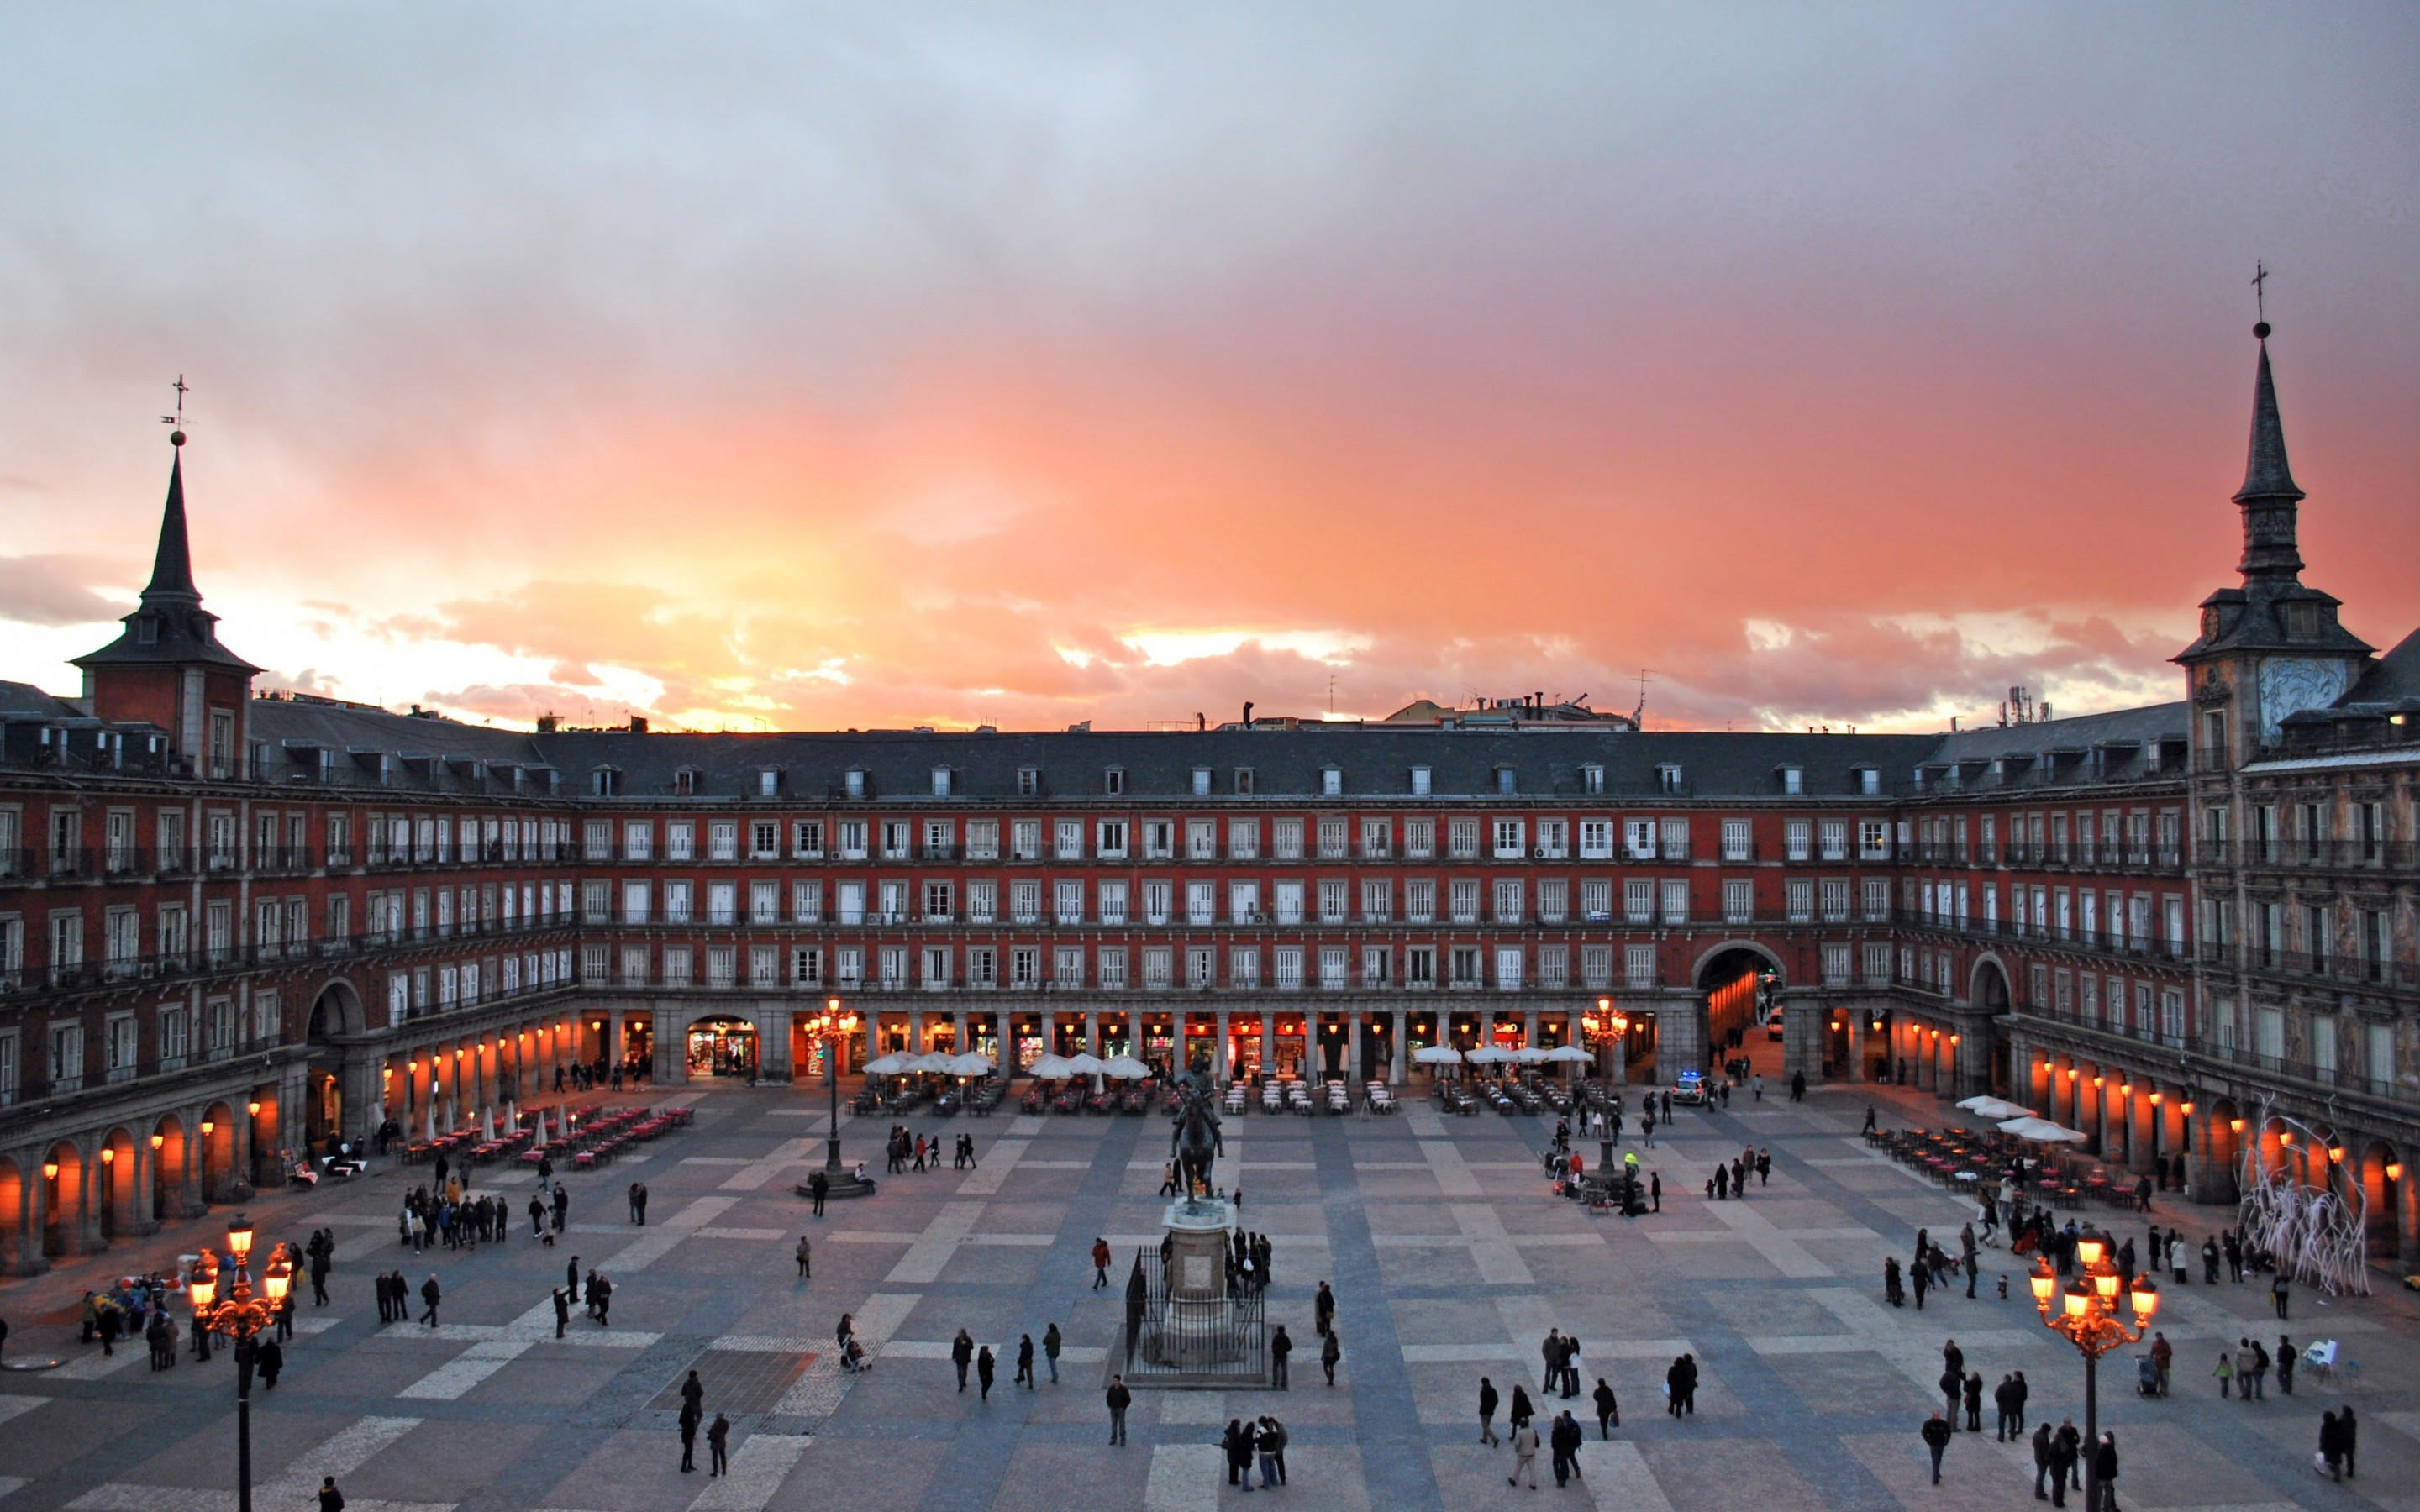 Plaza Mayor, Madrid, Spain Wallpaper for Desktop 2880x1800